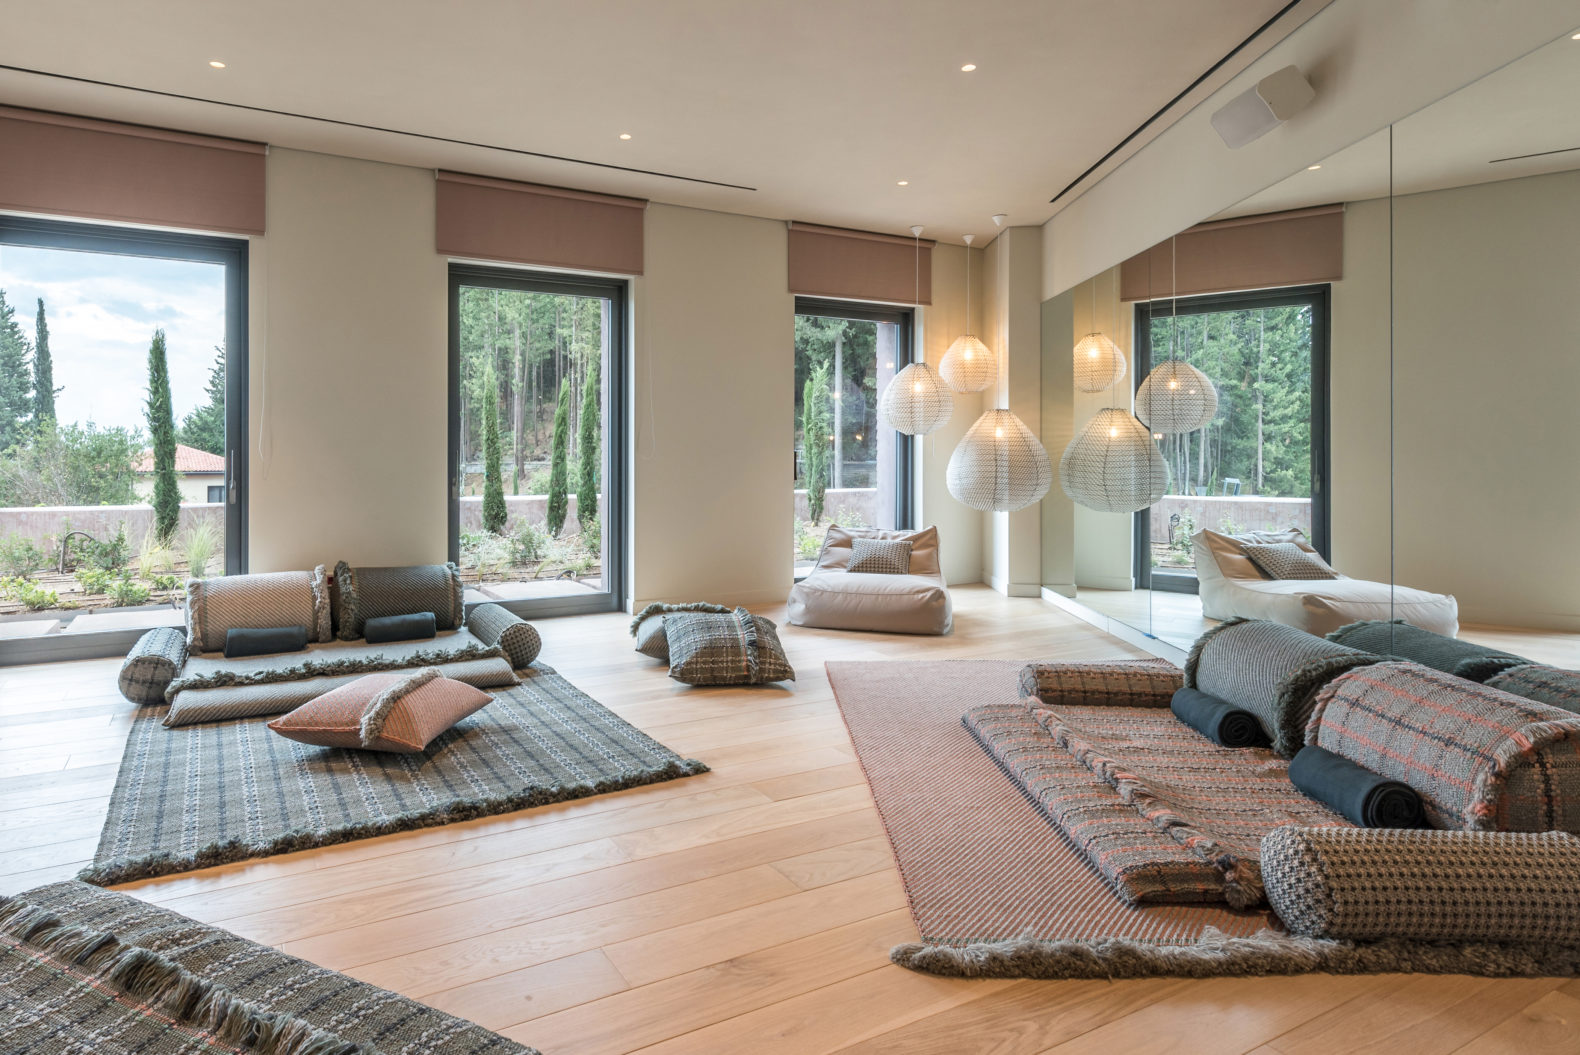 cozy-living-room-area-daybeds-pillows-timeout-relax-meditate-quality-time-euphoria-retreat-greece